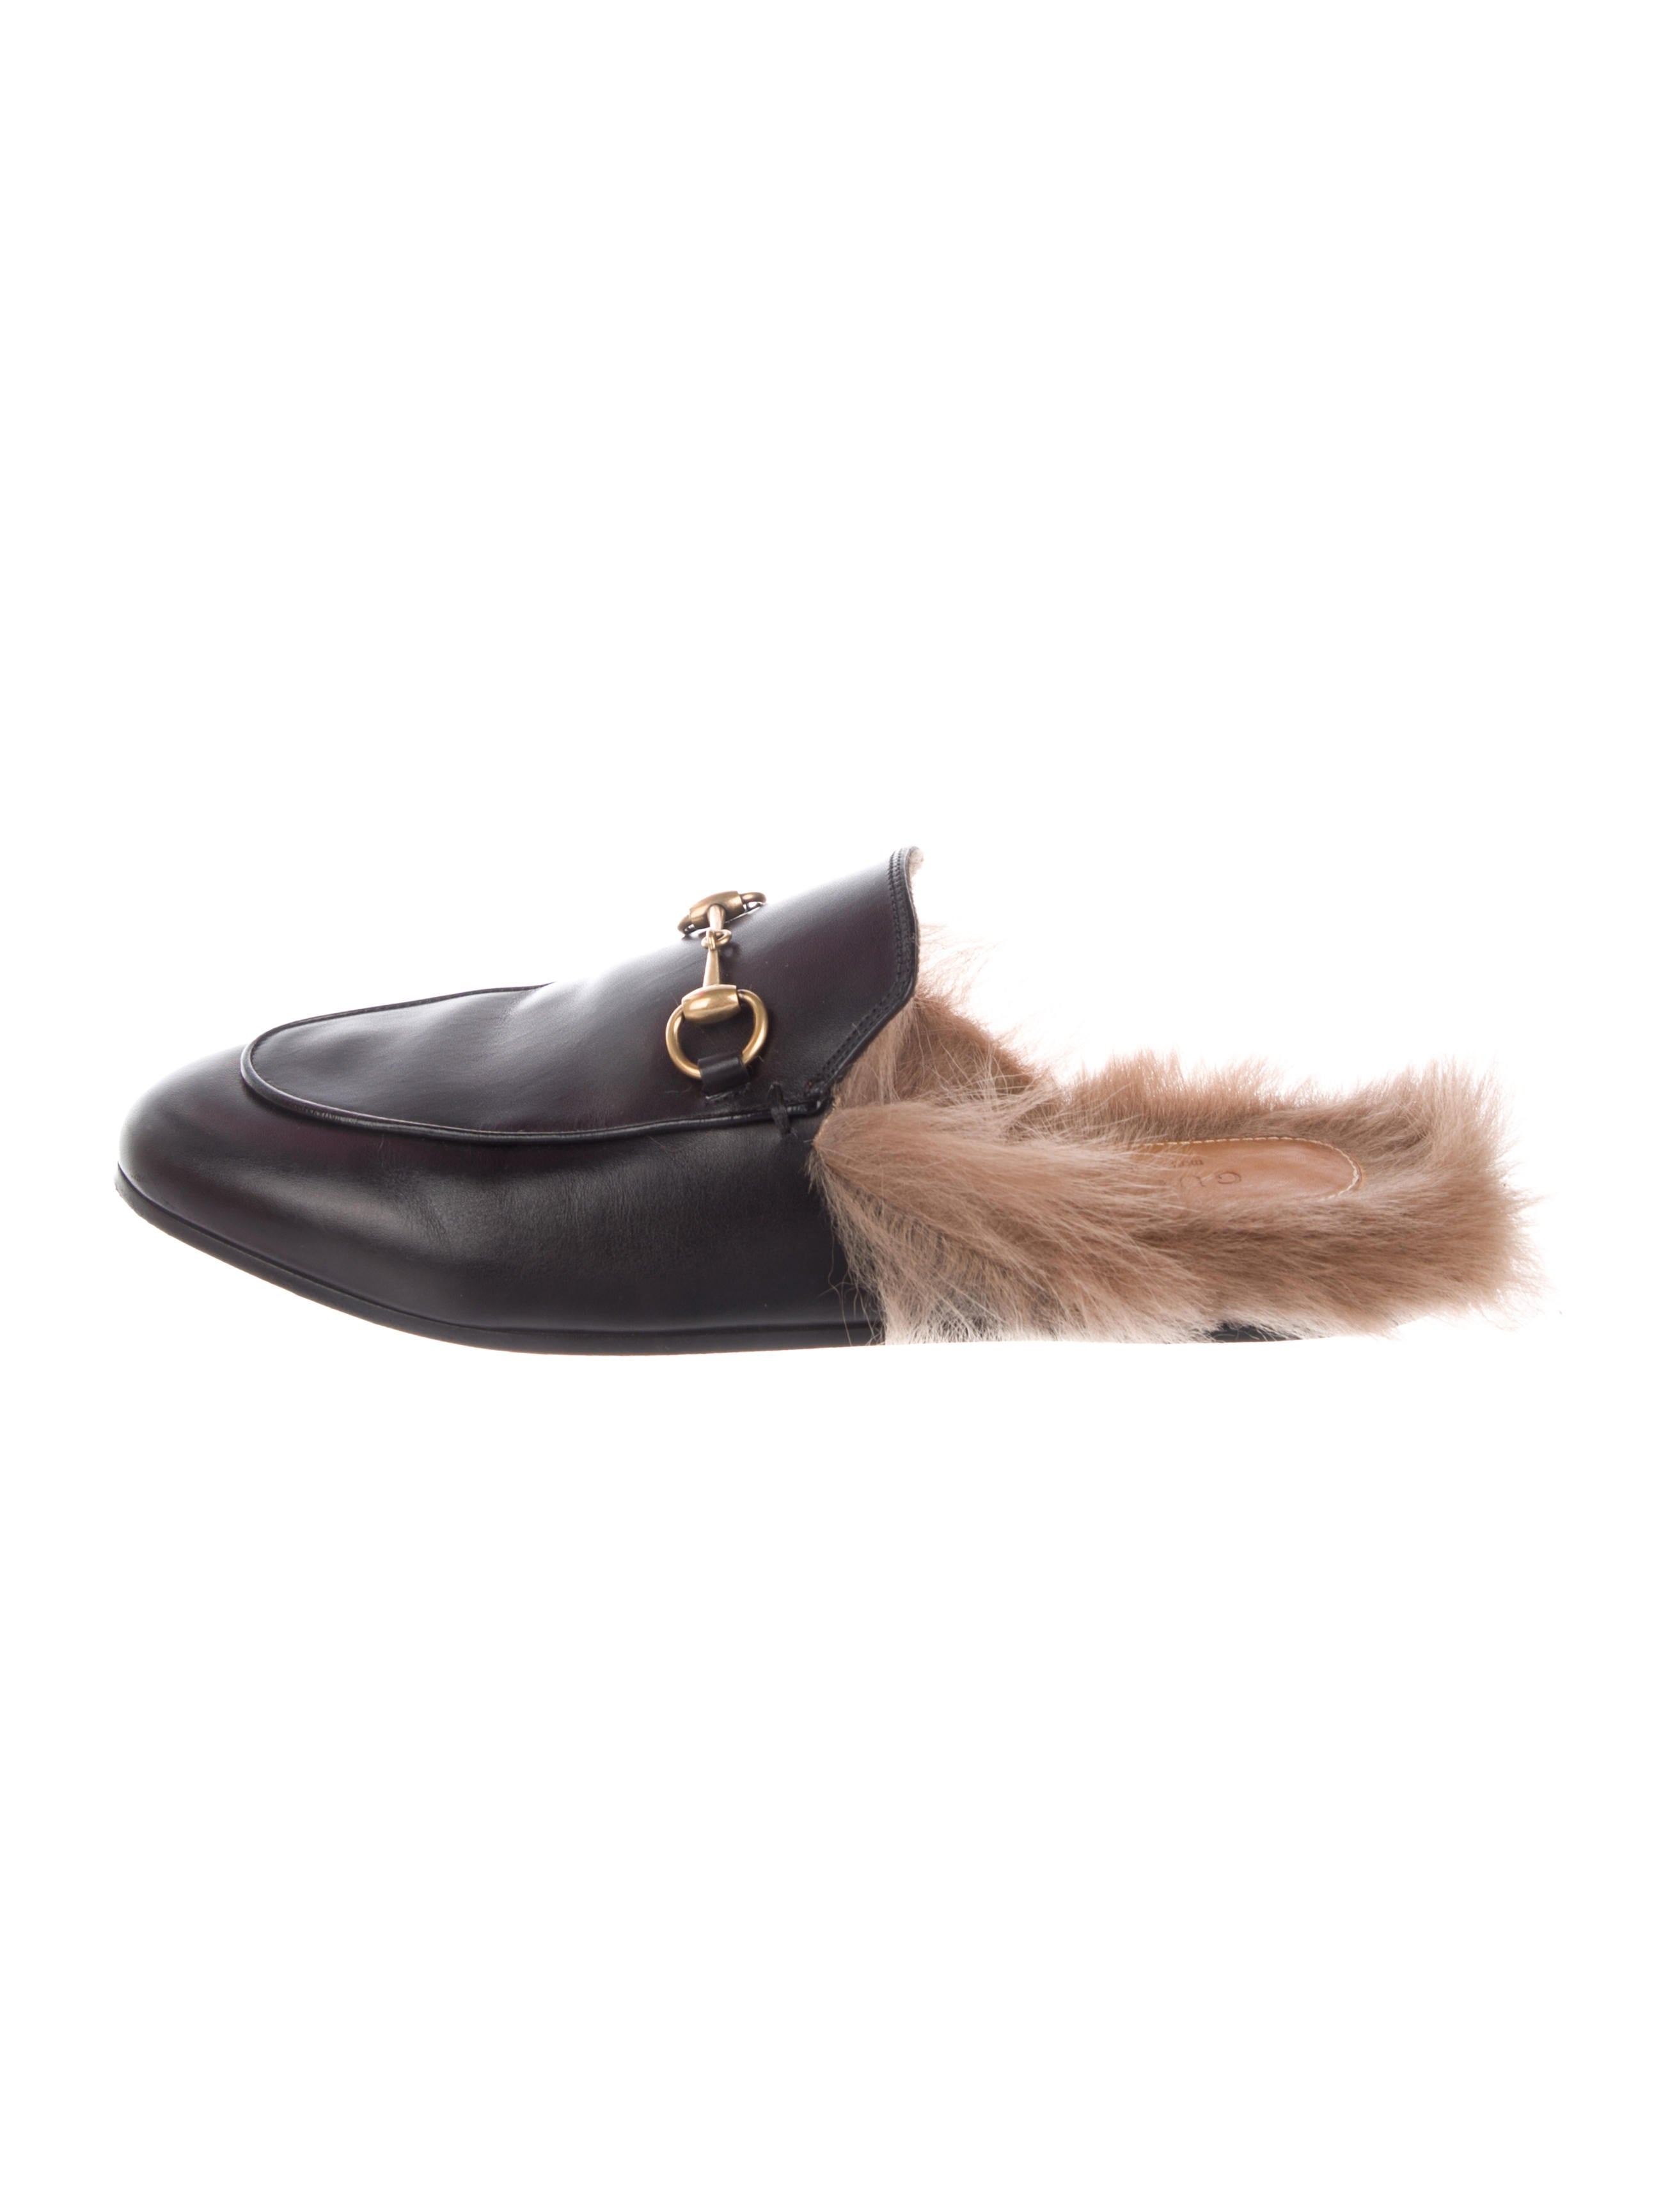 f249d16f5 Gucci Princetown Horsebit Mules - Shoes - GUC251254 | The RealReal